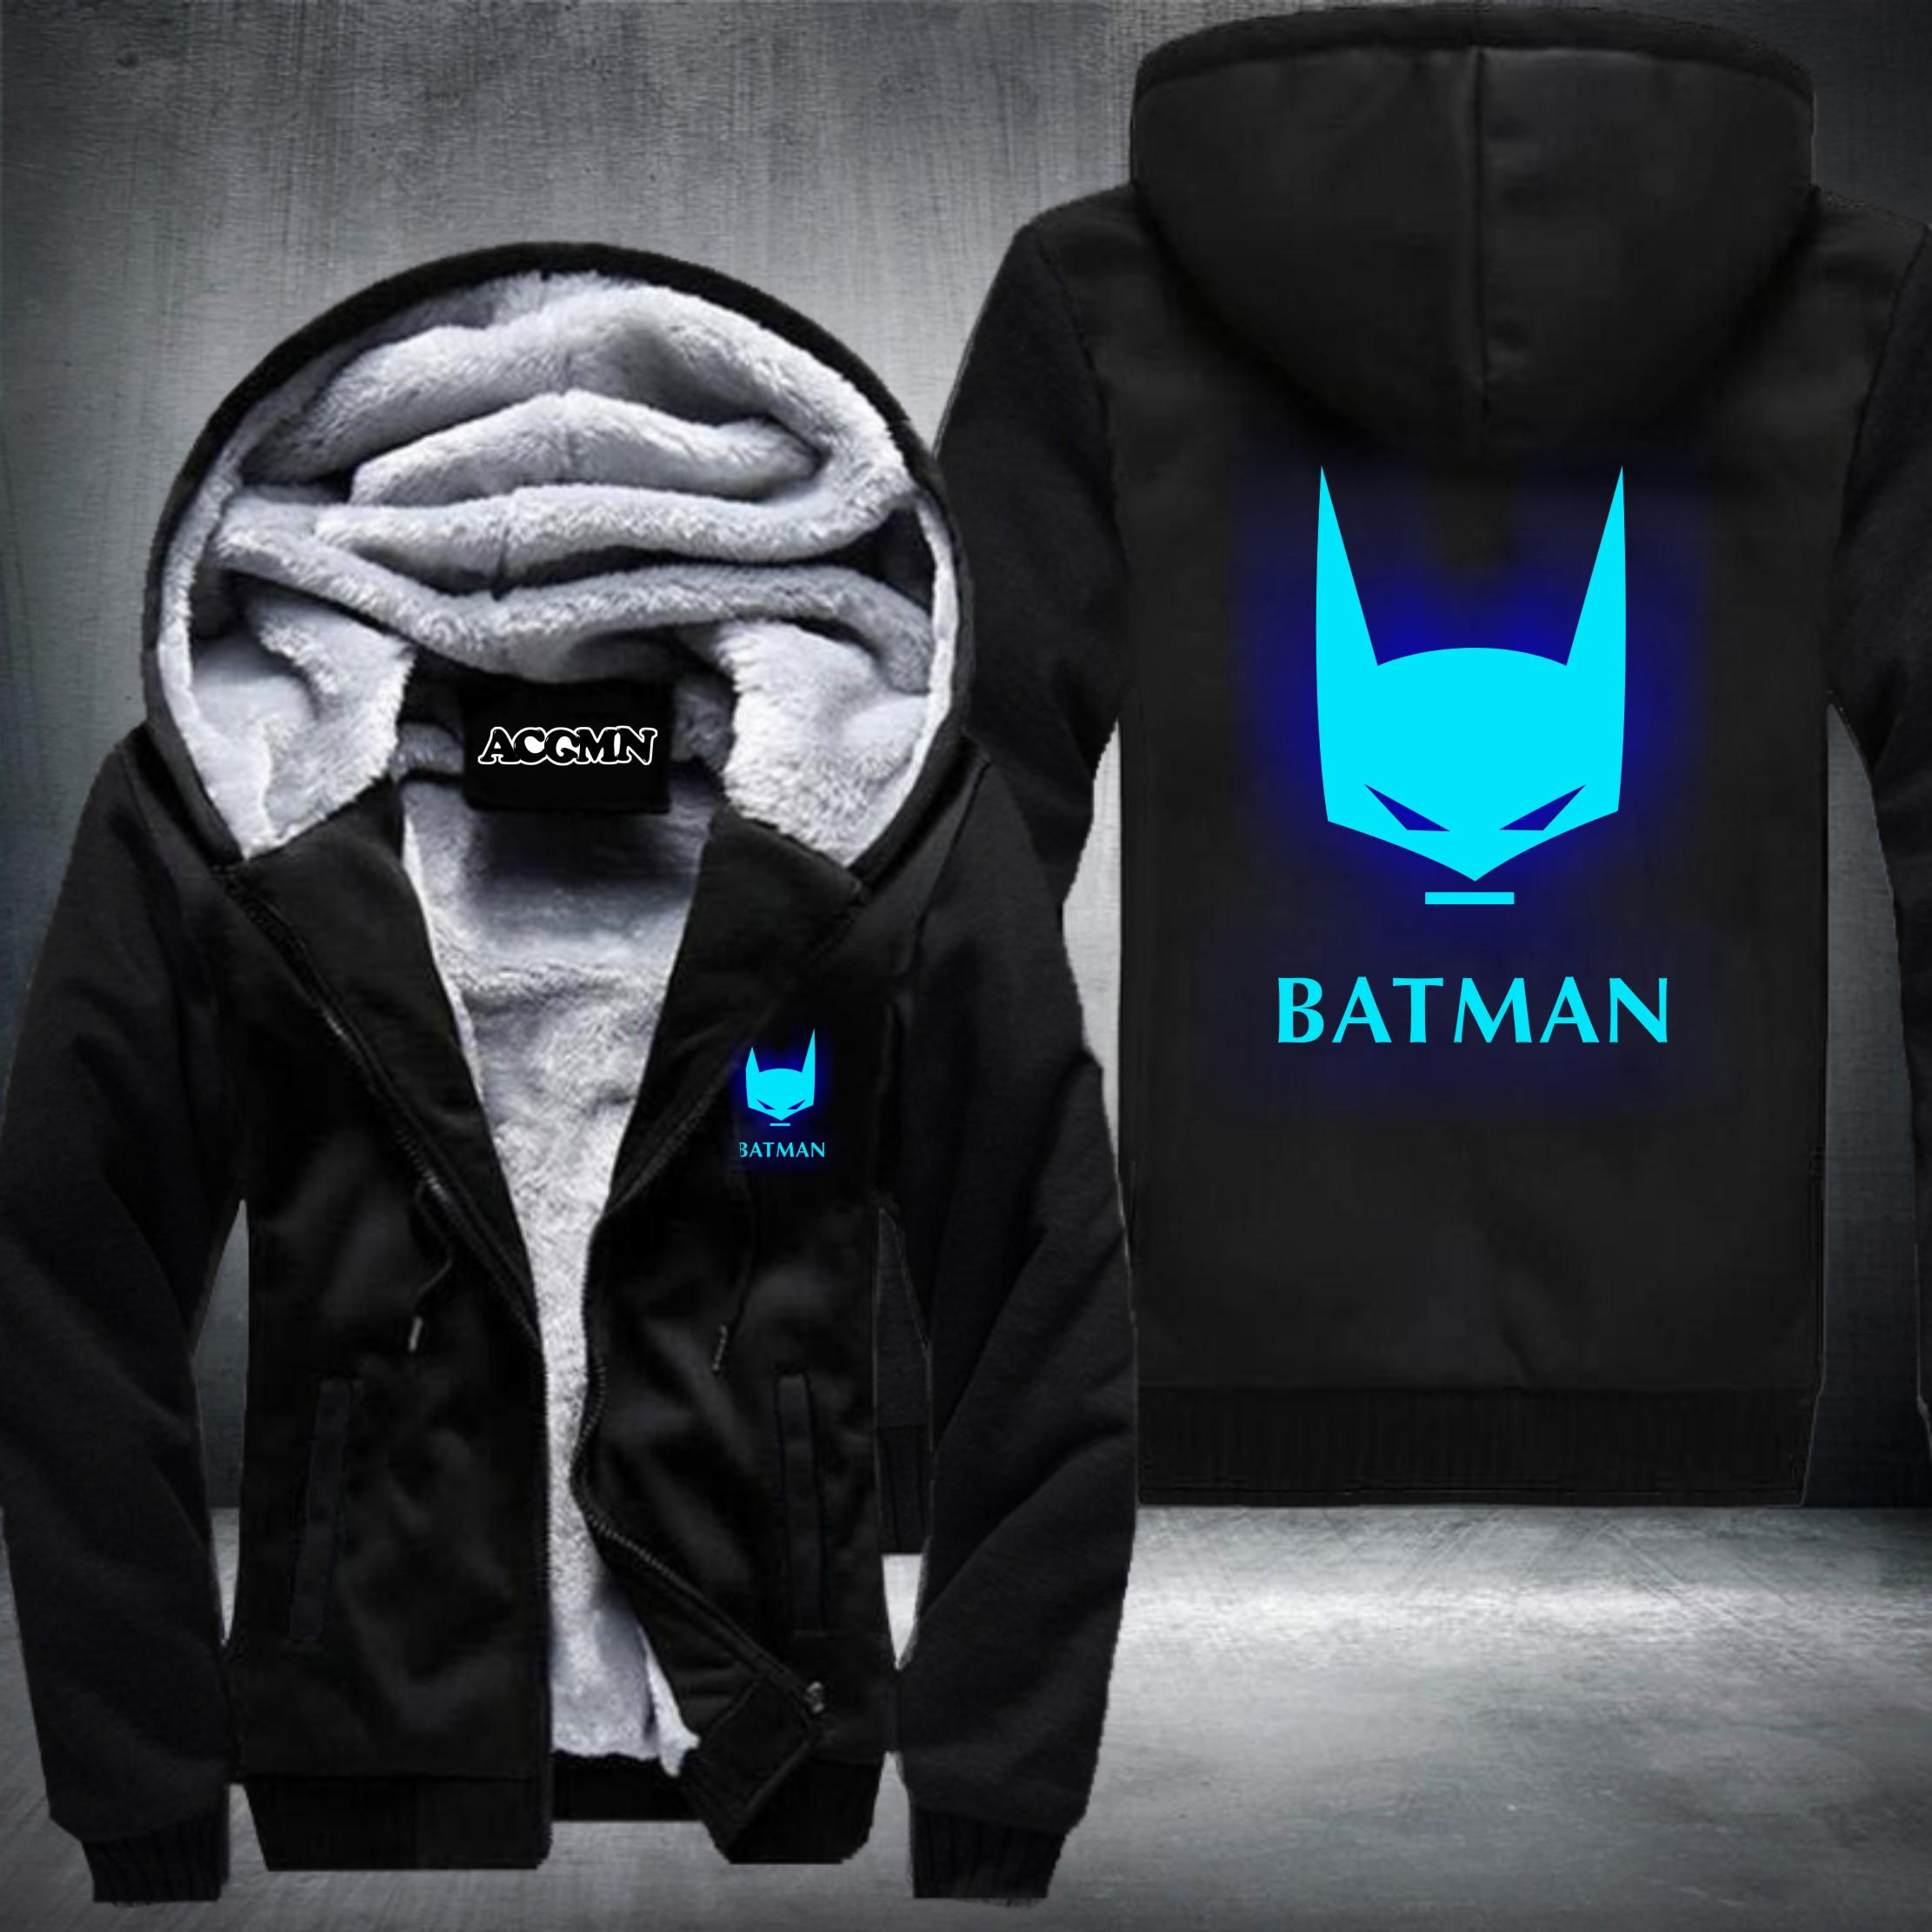 New Winter Jackets and Coats BATMAN hoodie Anime Luminous Hooded Thick Zipper Men cardigan Sweatshirts 4 styles USA Size